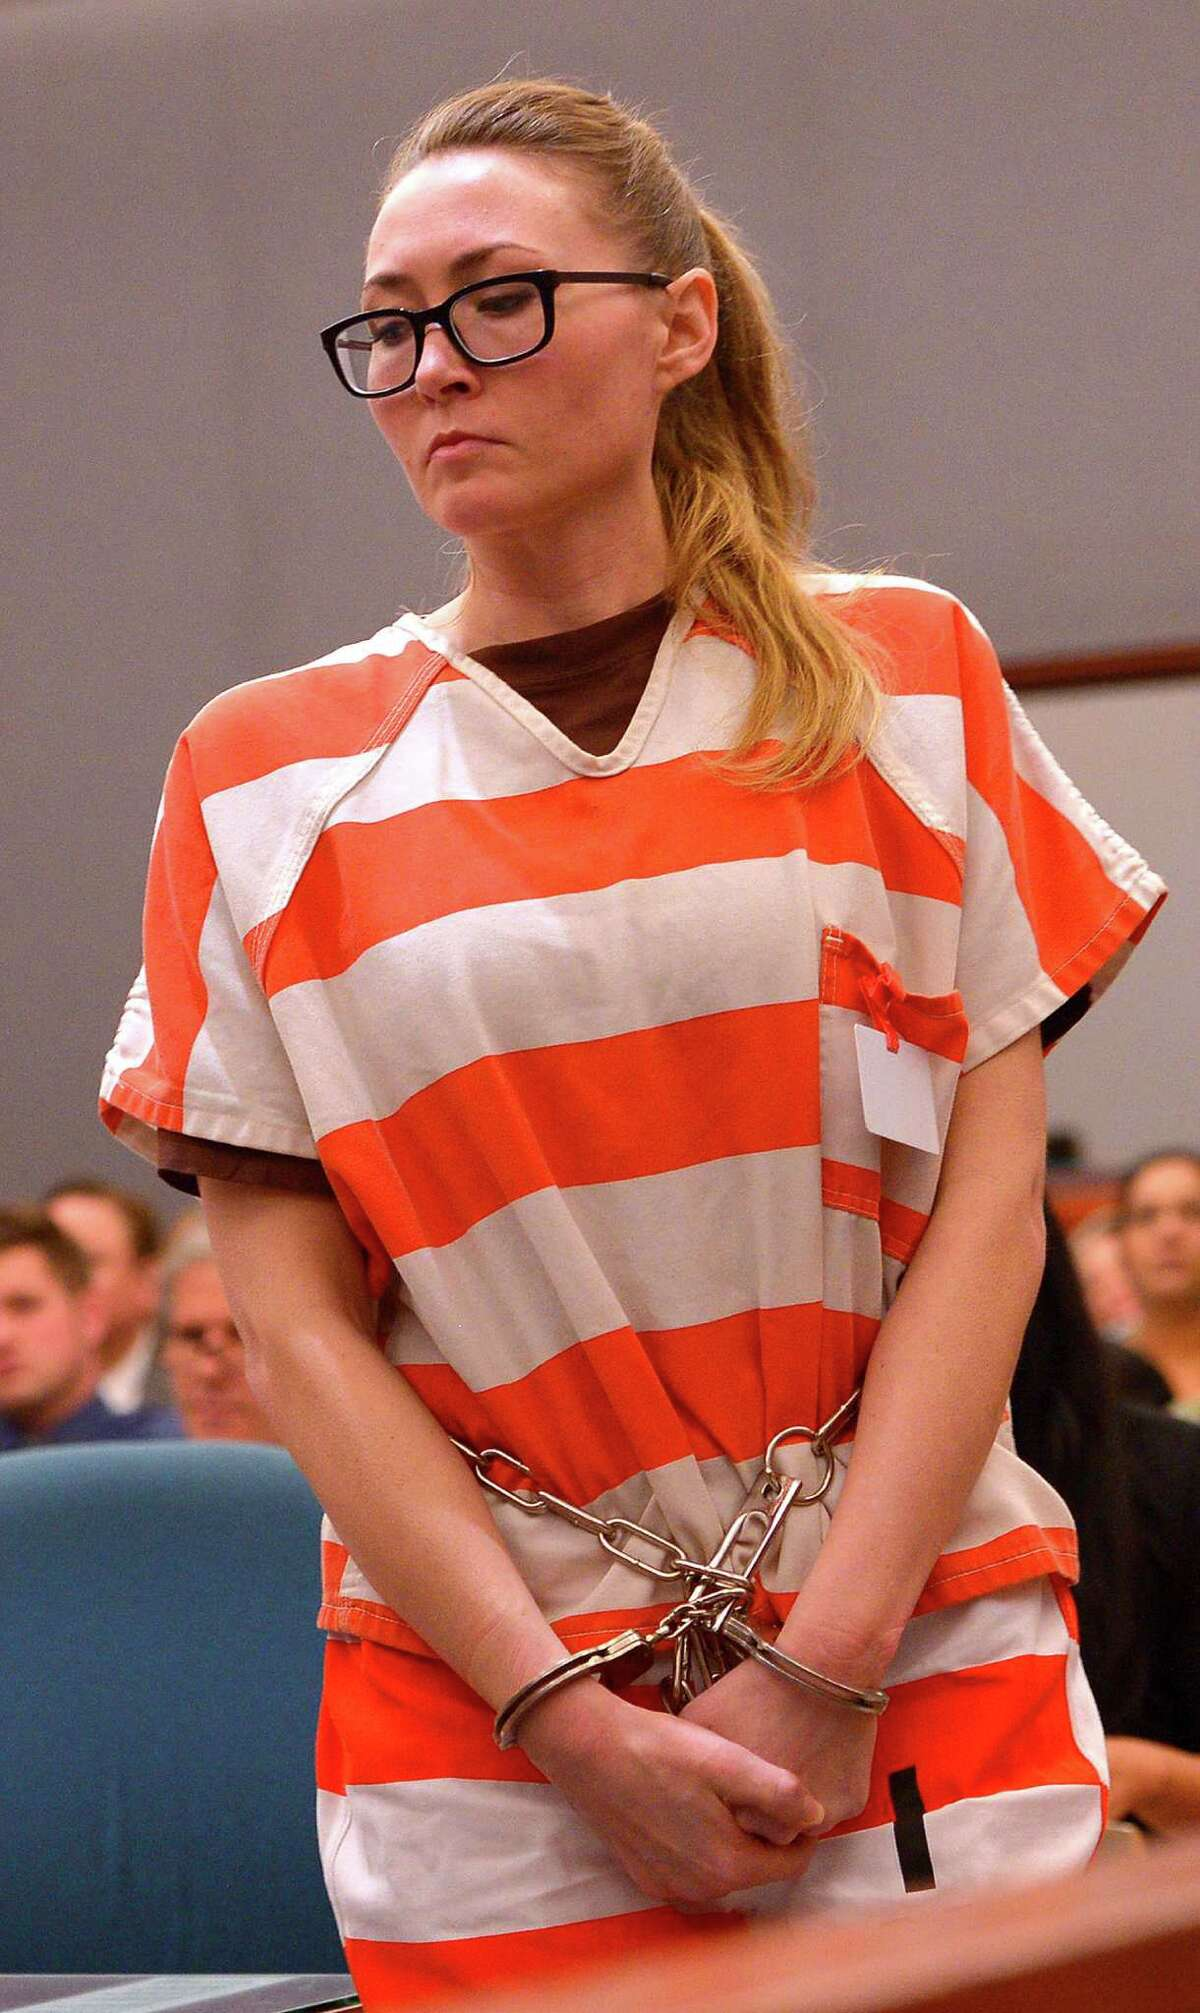 Brianne Altice appears in court during her sentencing Thursday, July 9, 2015, in Farmington, Utah. A judge sentenced Altice, a former high school English teacher who pleaded guilty to sexually abusing three male students, to at least two and up to 30 years in prison Thursday. (Leah Hogsten/The Salt Lake Tribune via AP, Pool)